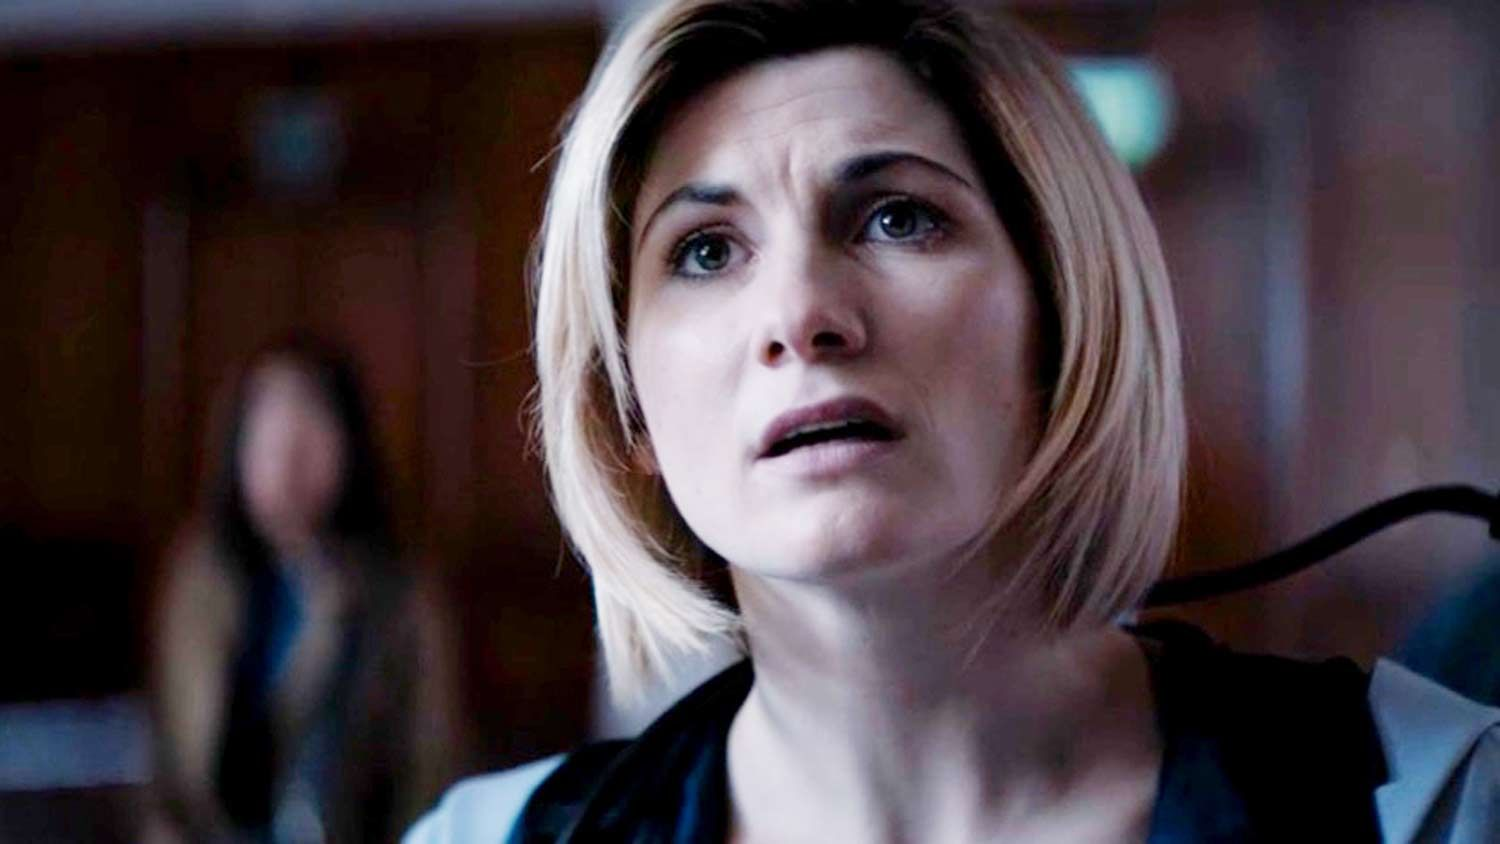 """Doctor Who's Jodie Whittaker reveals spider incident where she """"could have died"""" filming new series"""